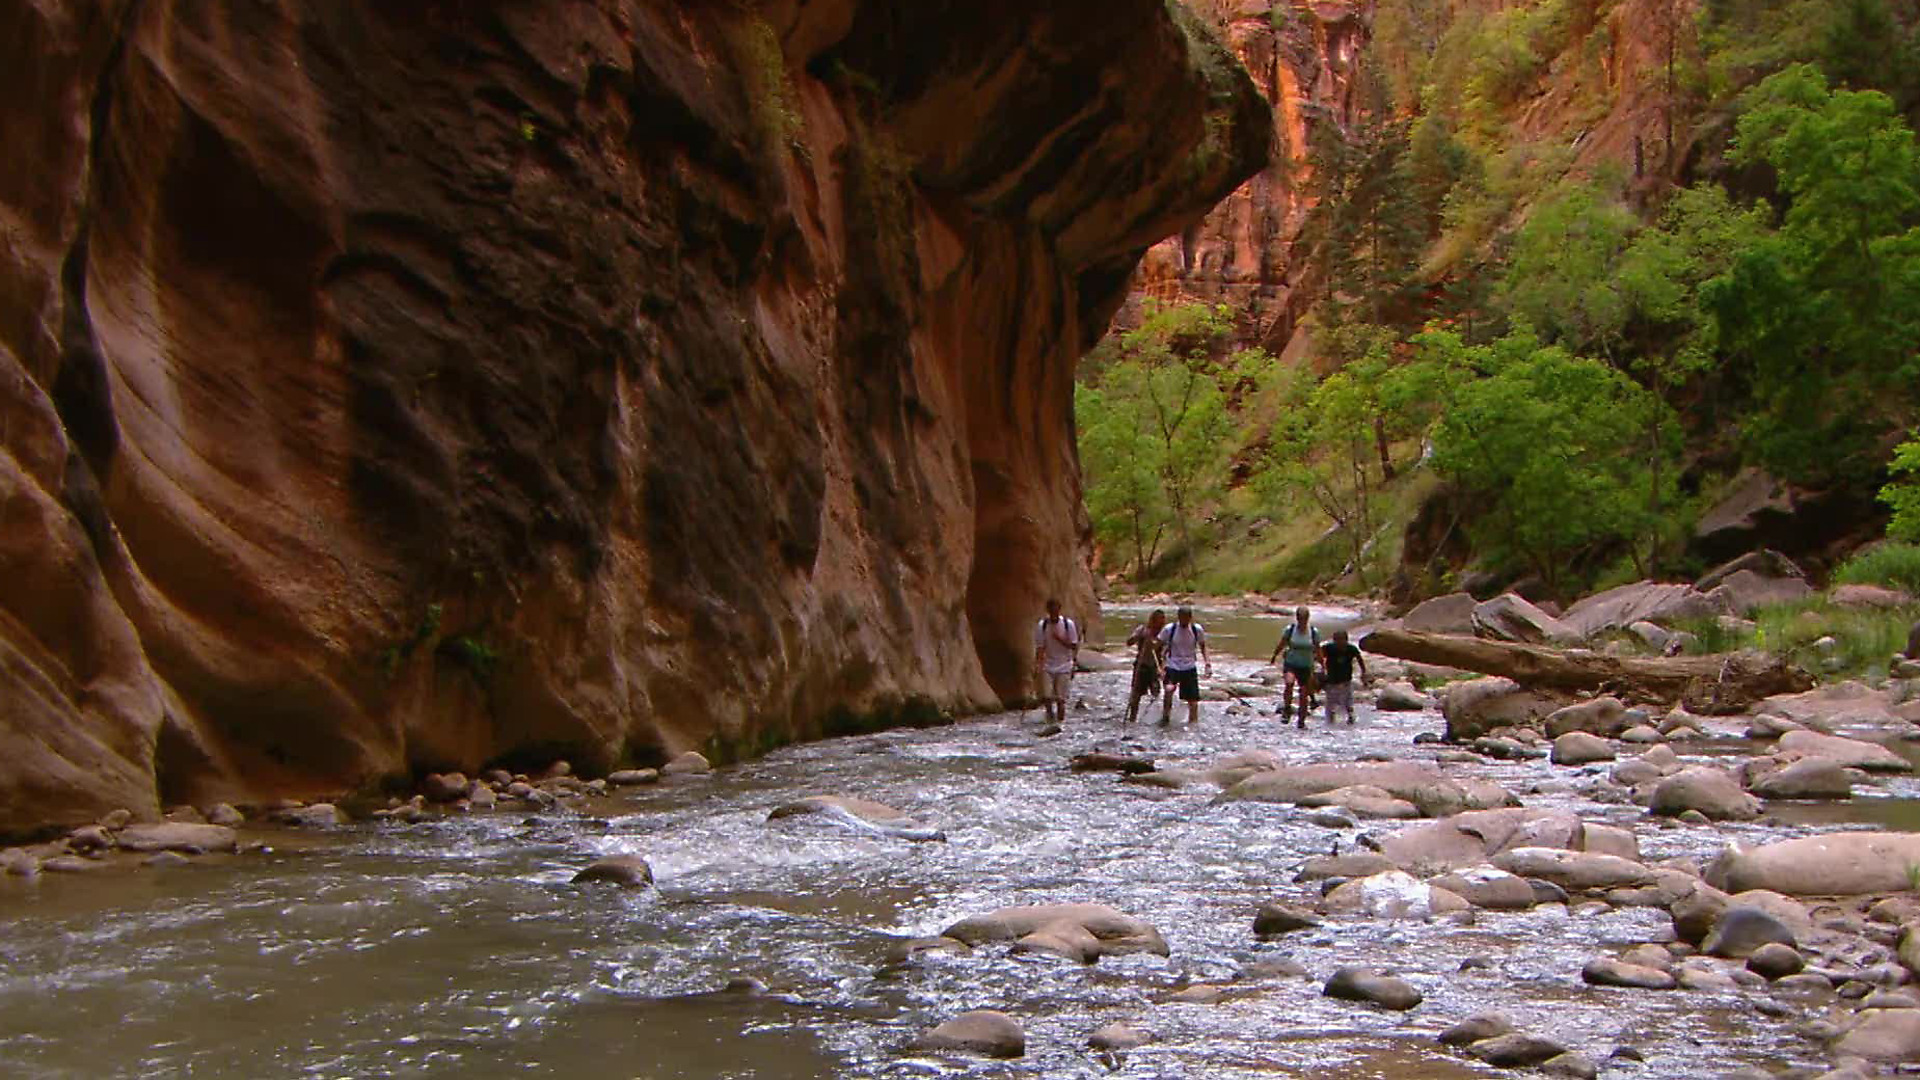 video | utah vacation destinations, ideas and guides : travelchannel